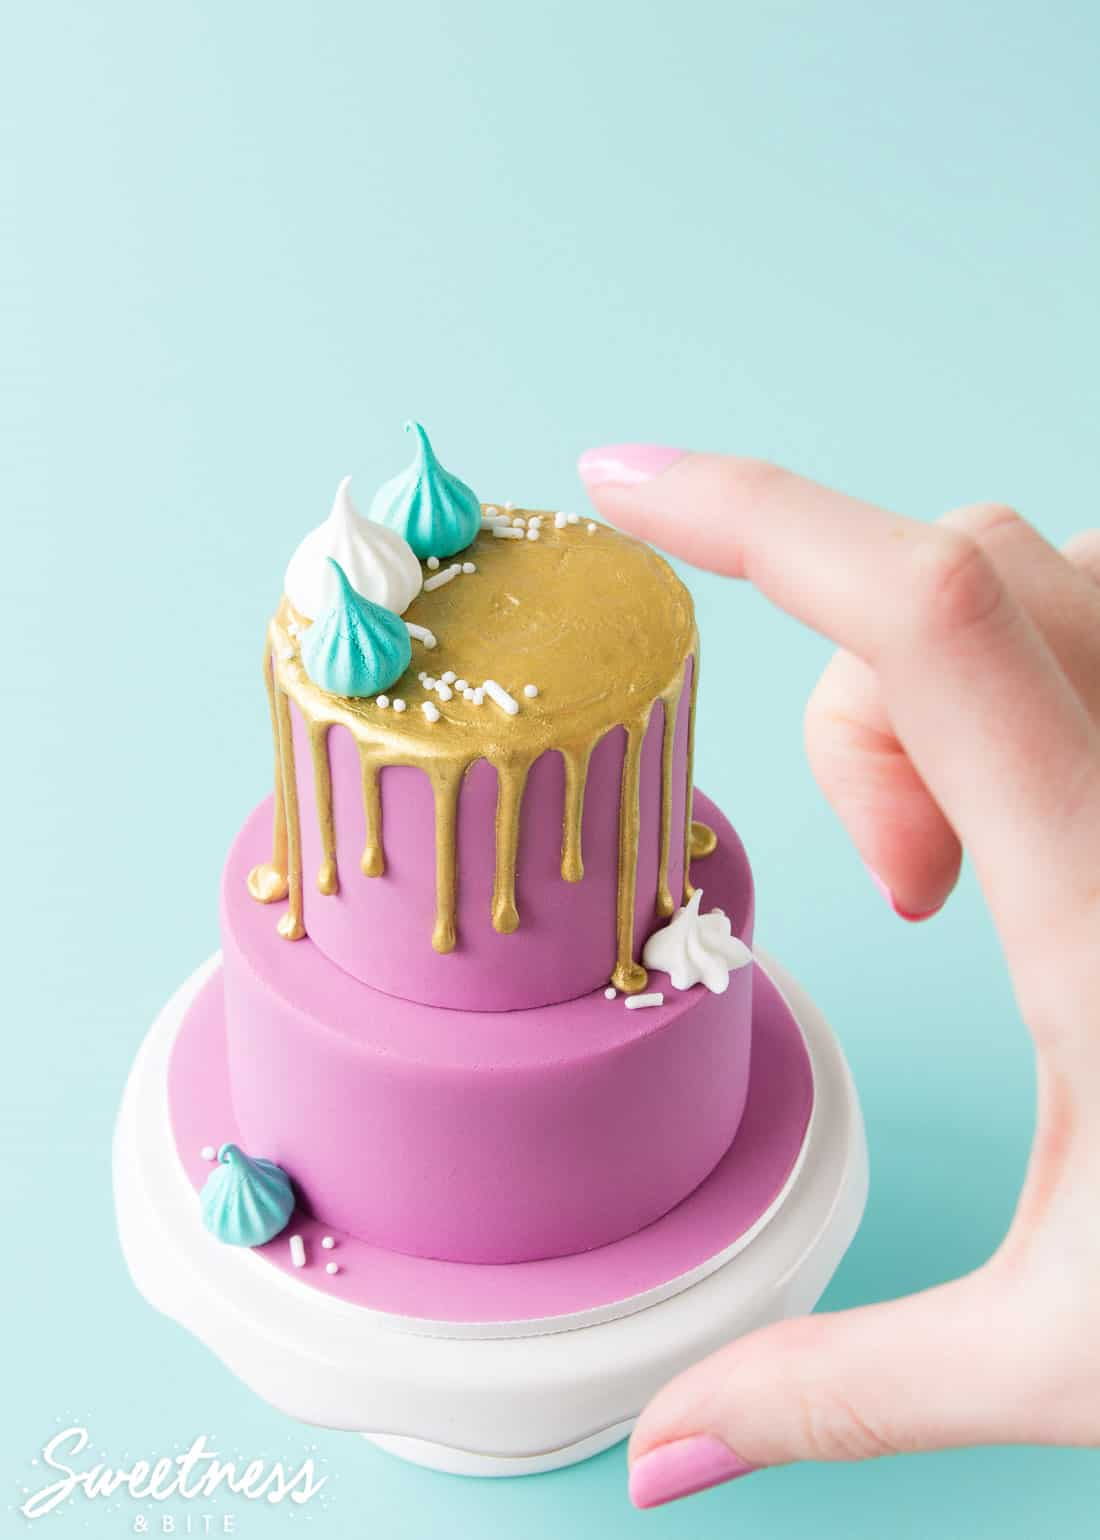 A two tier mini cake with purple fondant and a gold drip, decorated with white and teal mini meringues and white sprinkles. A hand is in the picture so show how small the cake is.